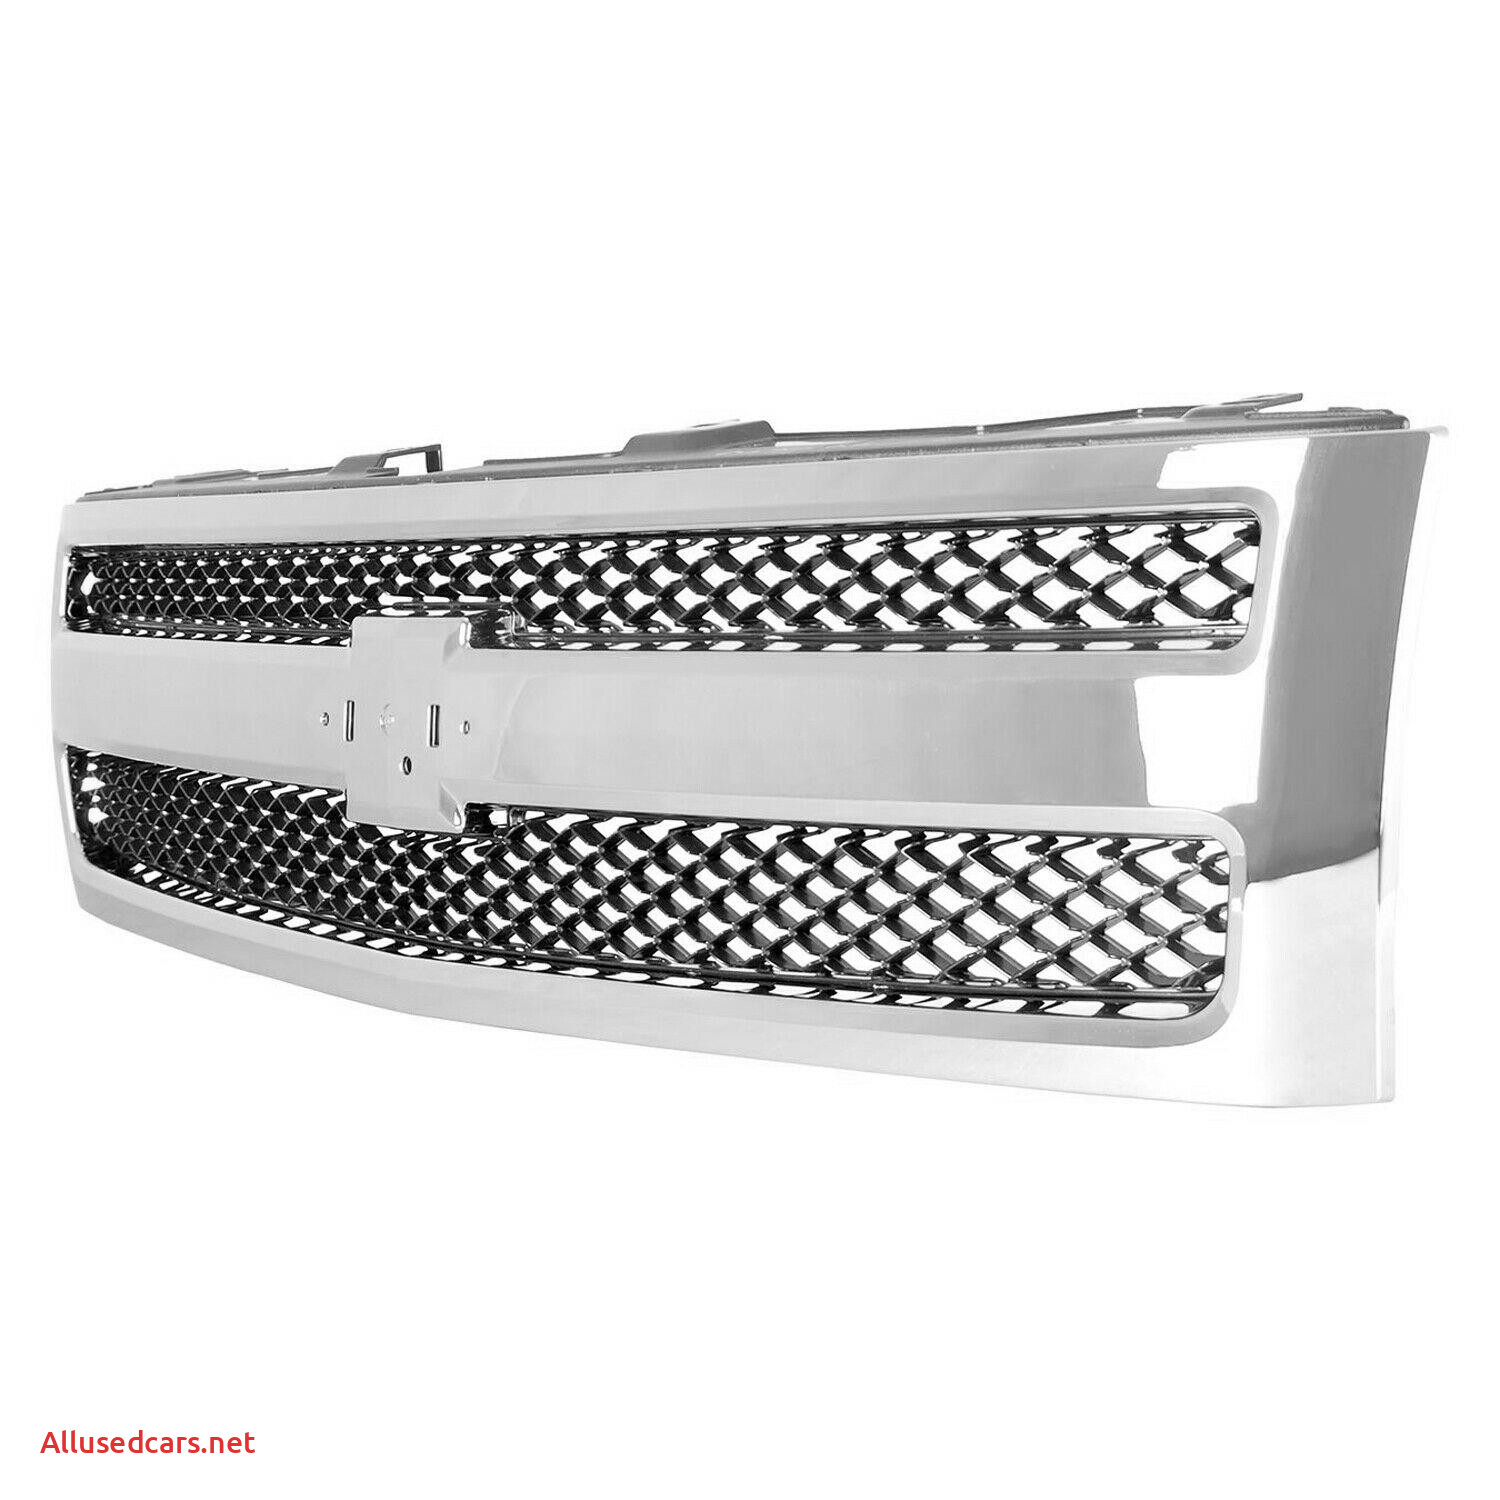 2016 Chevy Silverado Best Of Details About New Front Grille Fits 2007 2013 Chevrolet Silverado 1500 Gm